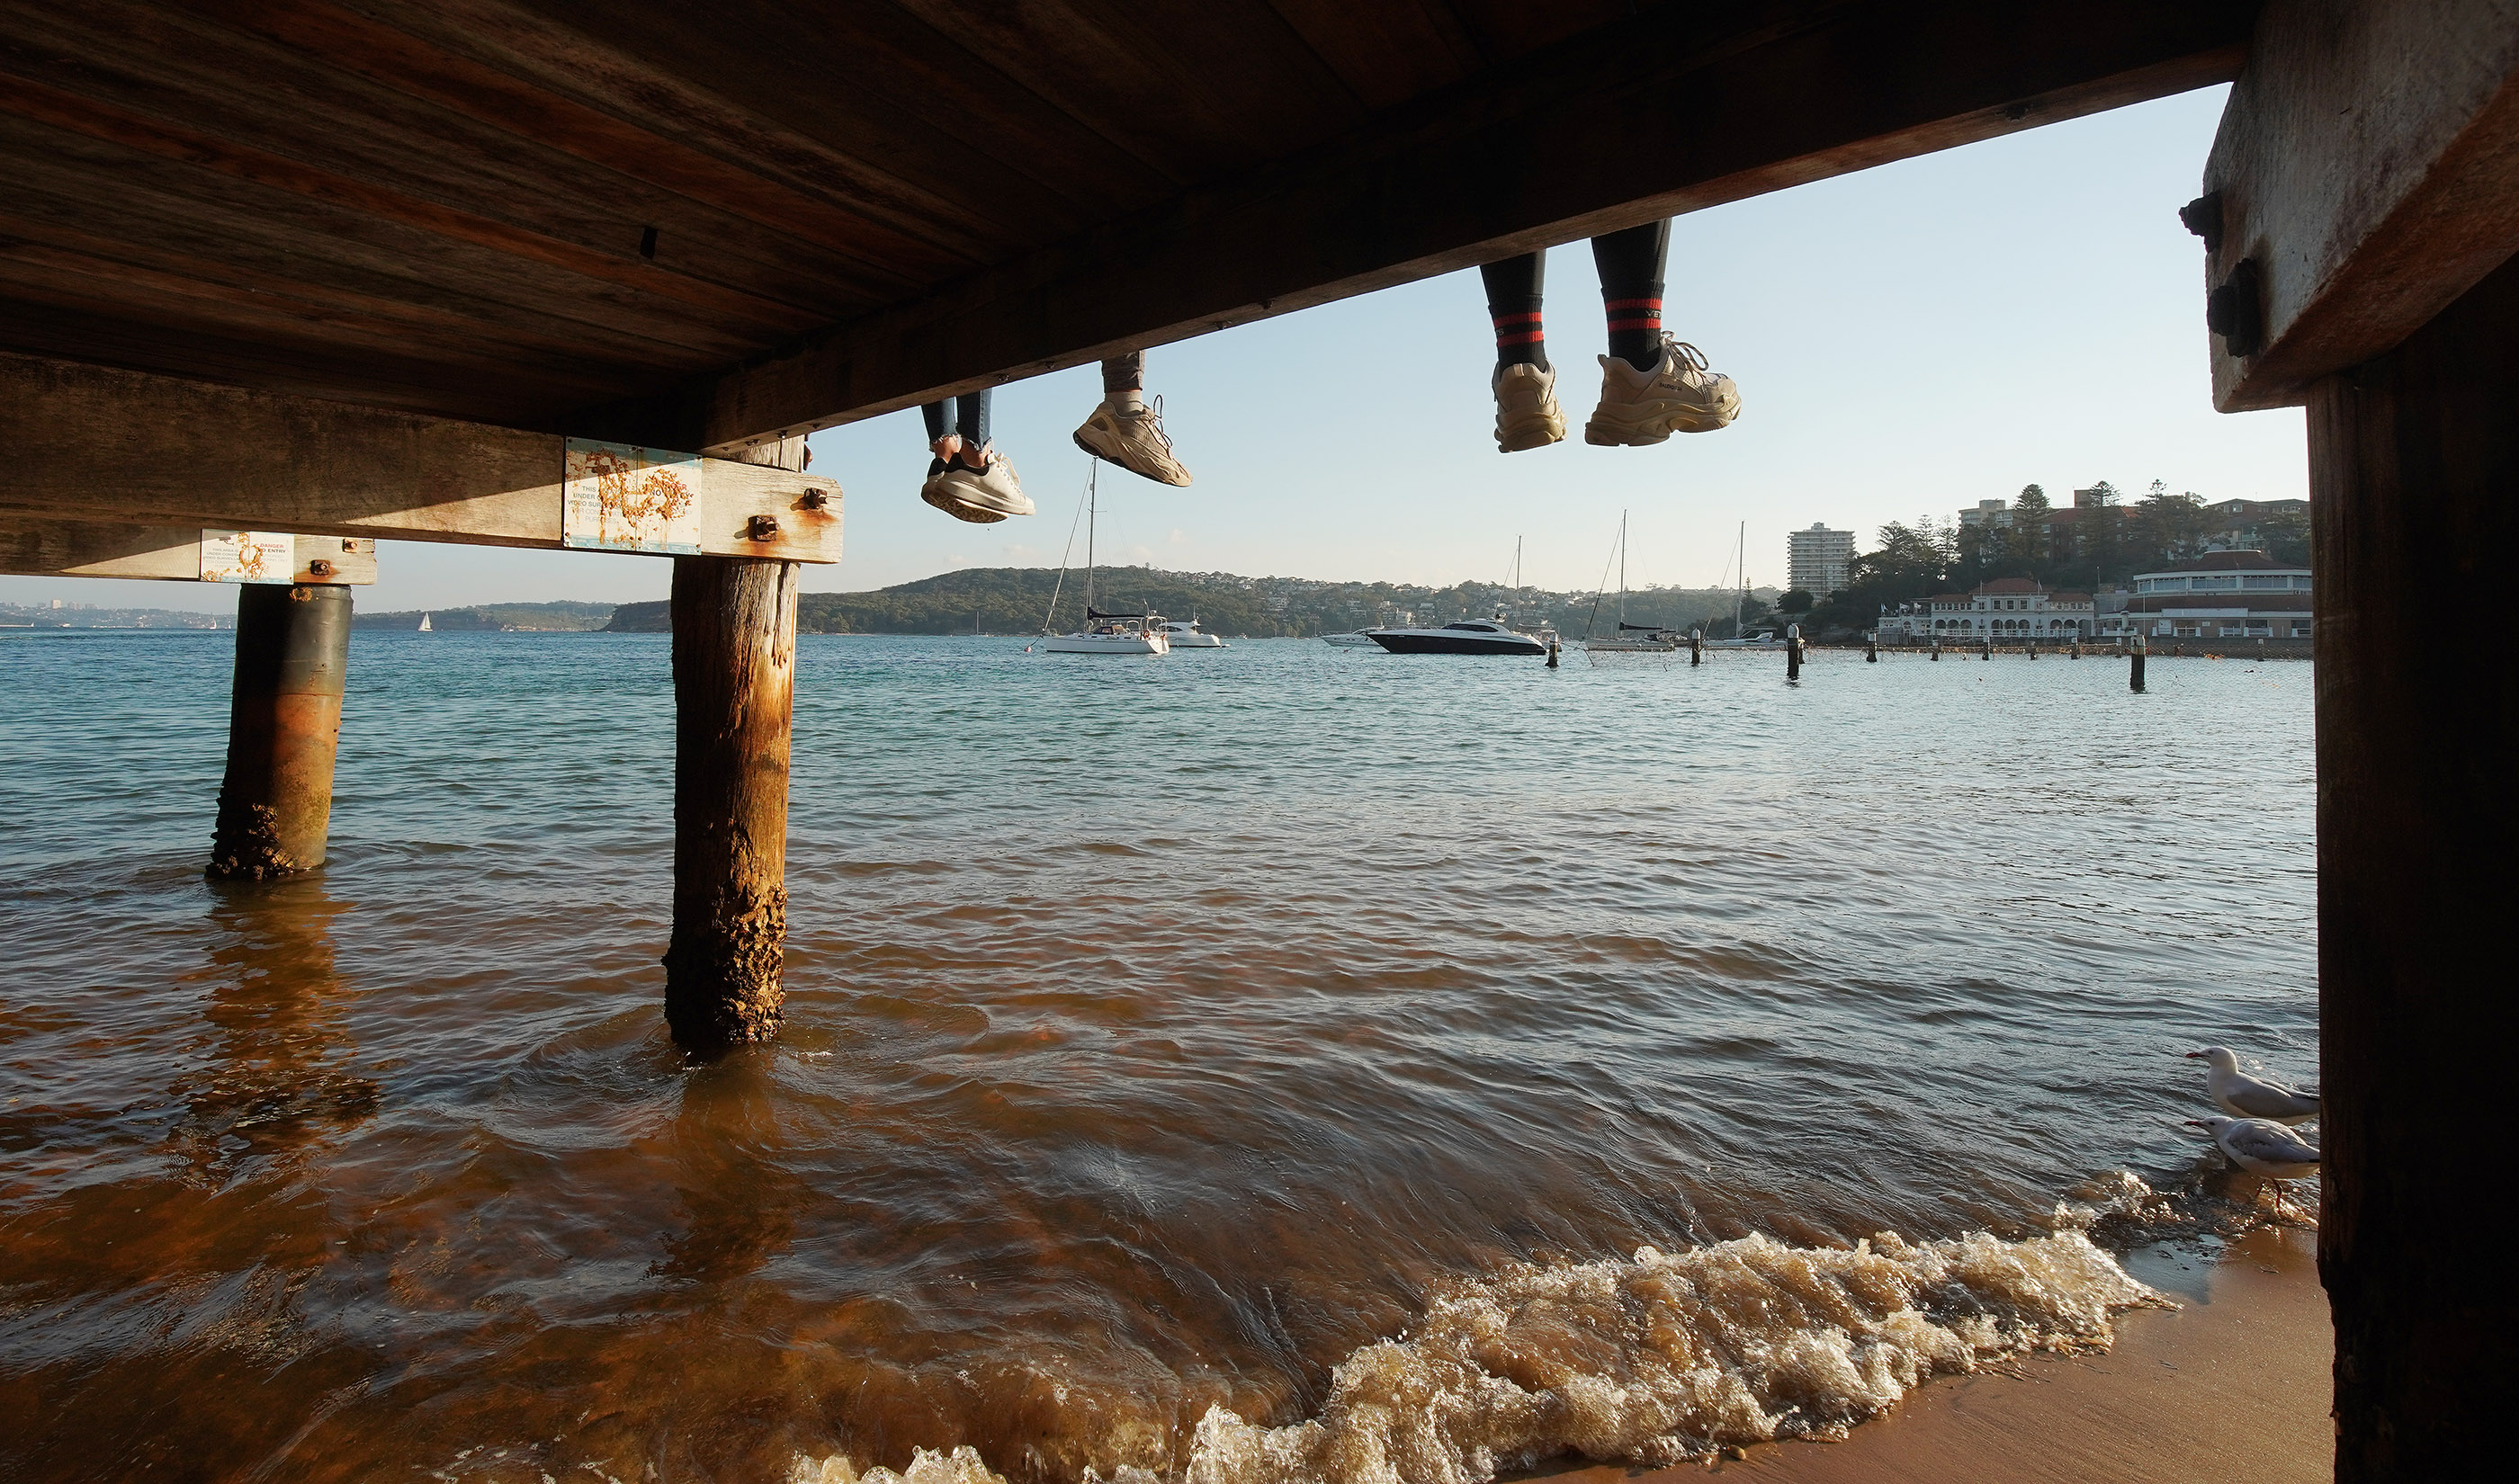 Manly Wharf visitors dangle their feet on May 18, 2019 in Manly, Australia. President Russell M. Nelson, with his wife, Sister Wendy Nelson, visited Sydney, Australia, on his nine-day, seven-nation Pacific Ministry Tour.